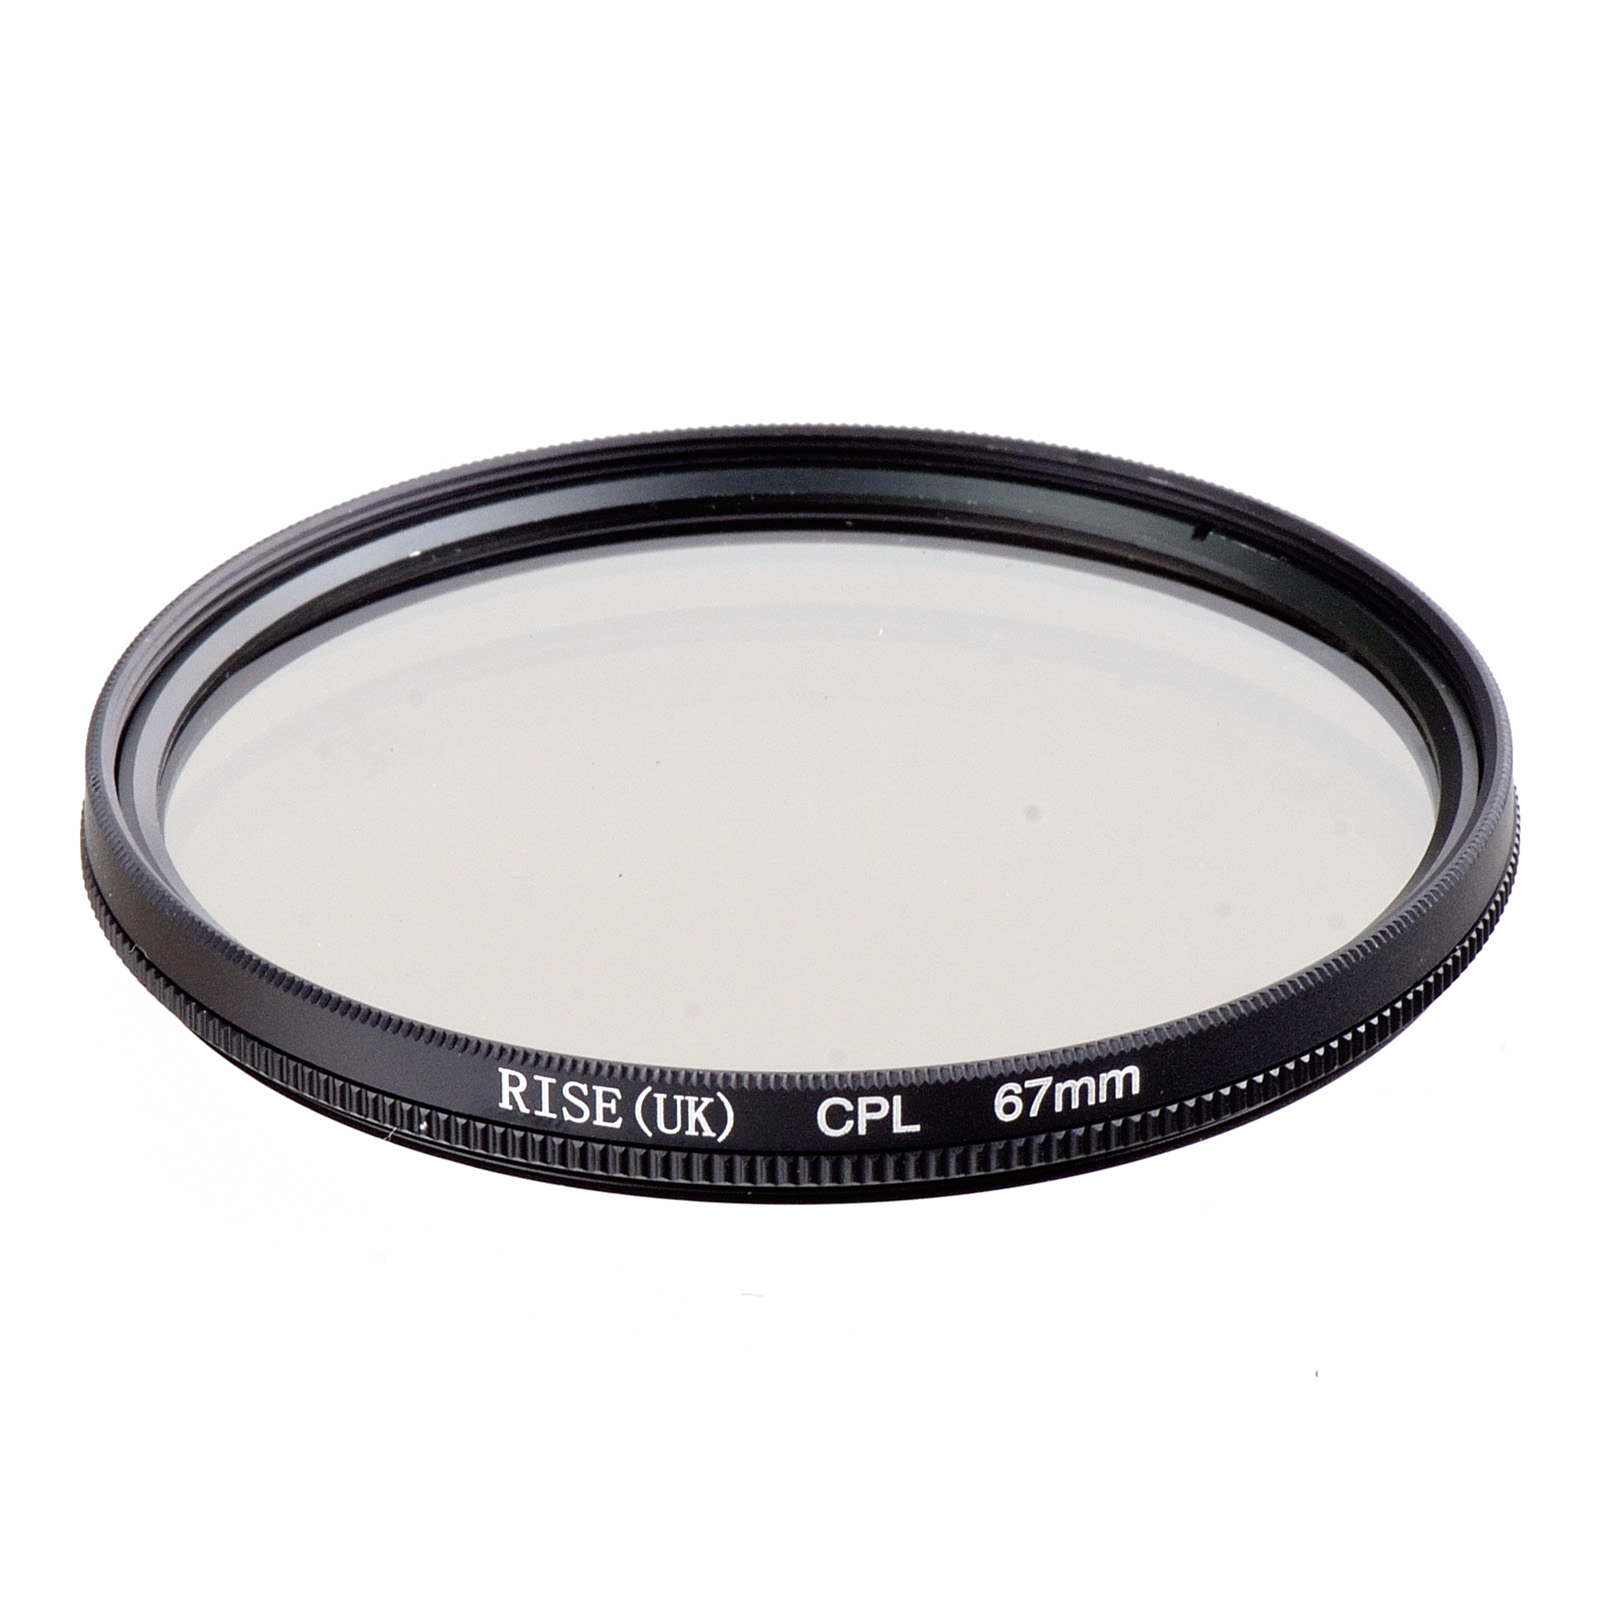 RISE 67mm Circular Polarizing CPL C PL Filter Lens 67mm For Canon NIKON Sony Olympus Camera|filter membrane|lens filter for canonfilter - AliExpress